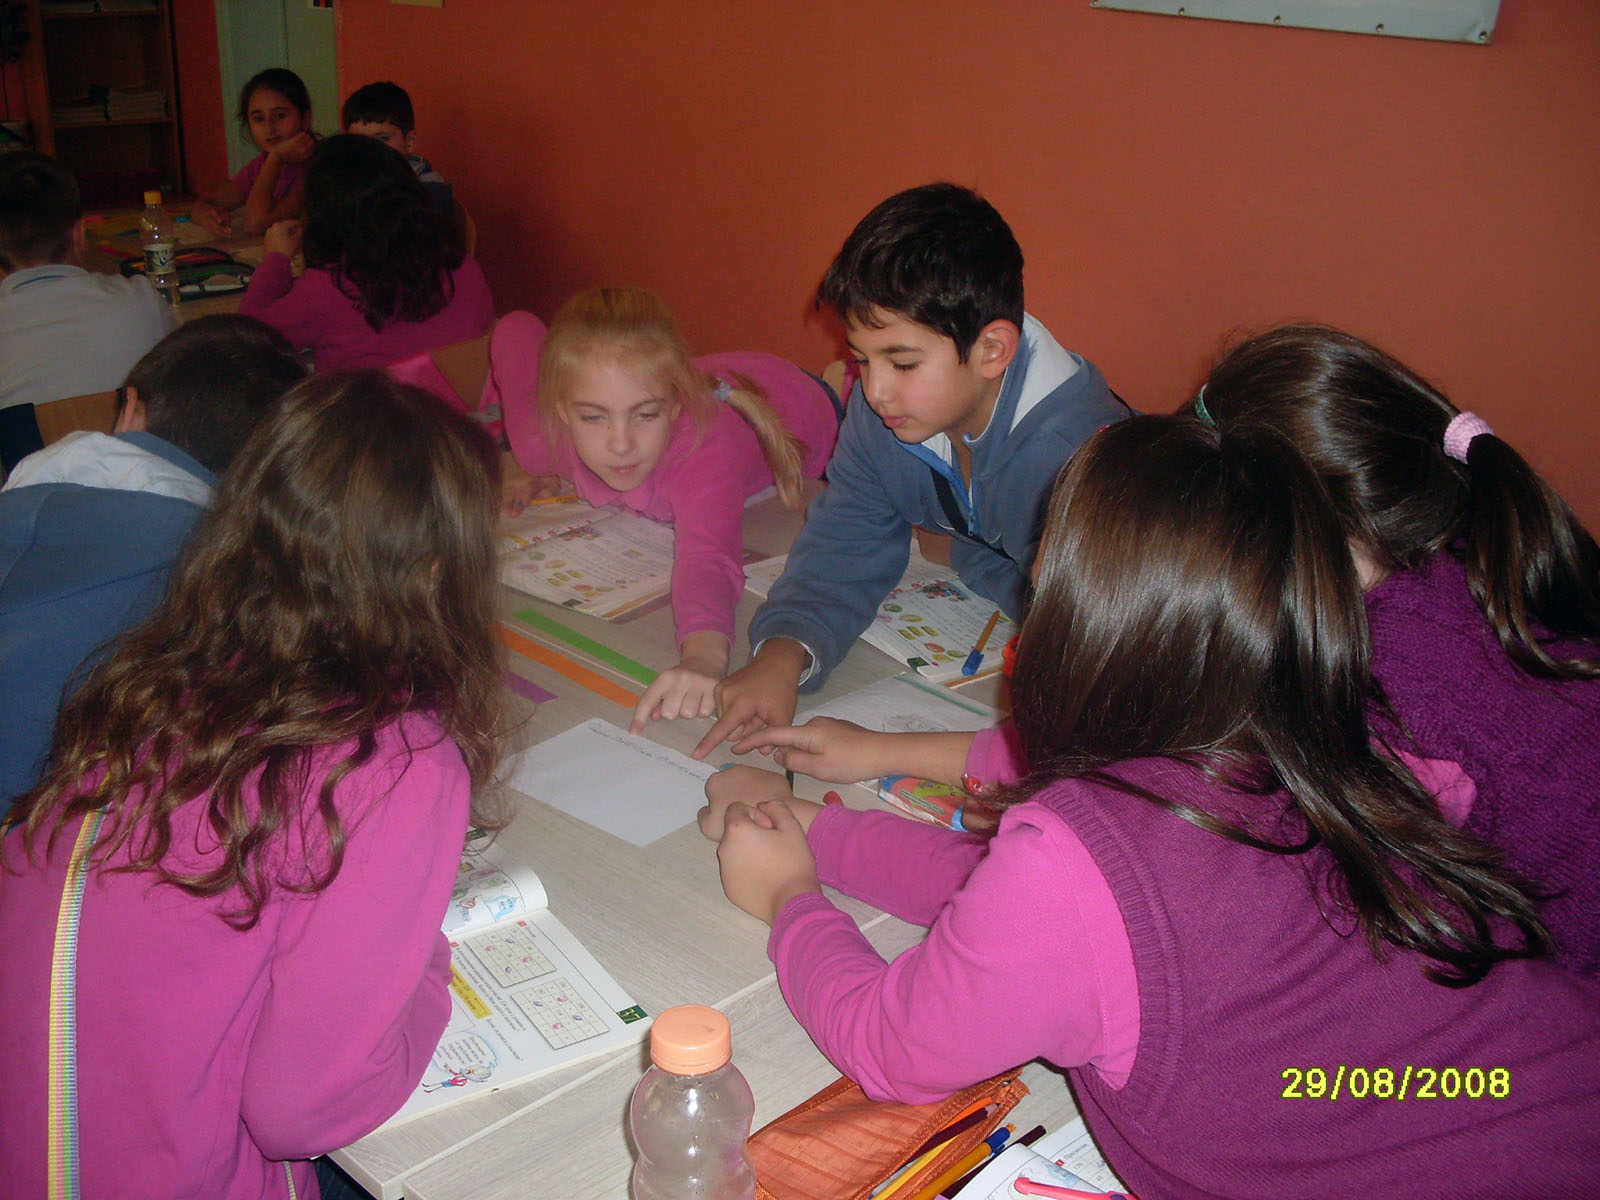 fg18-group-working-20